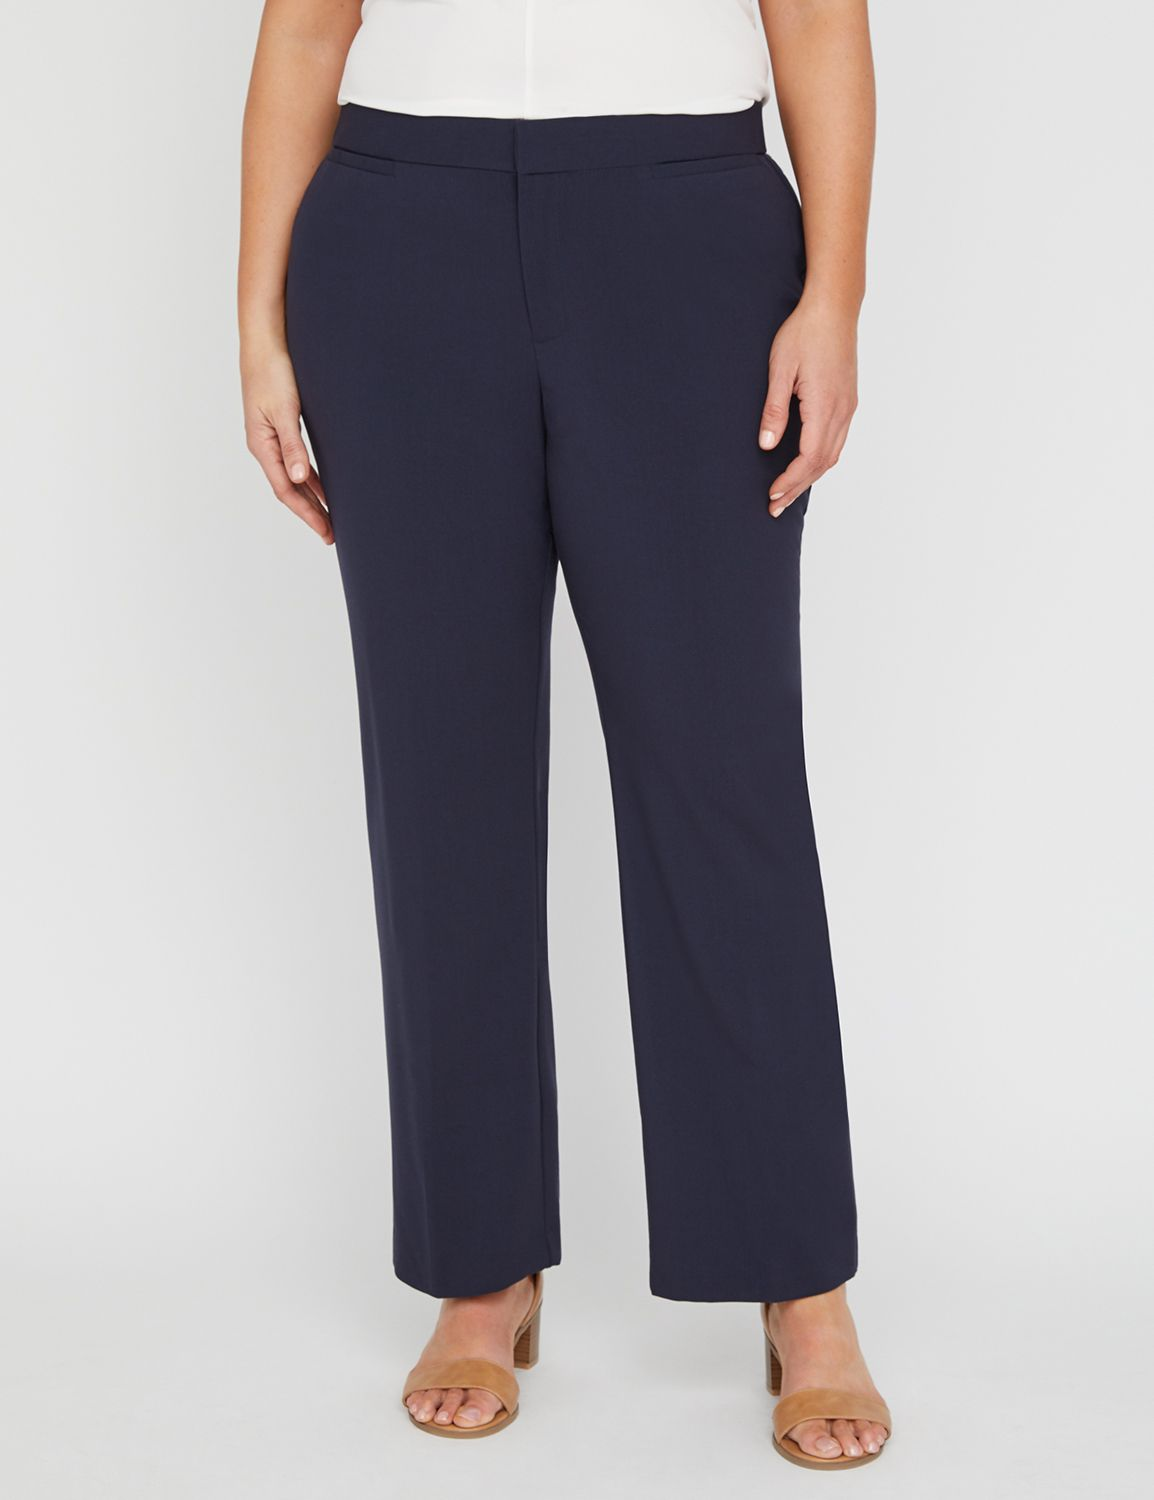 Right Fit Pant (Moderately Curvy) Right Fit Pant (Moderately Curvy) MP-300043664